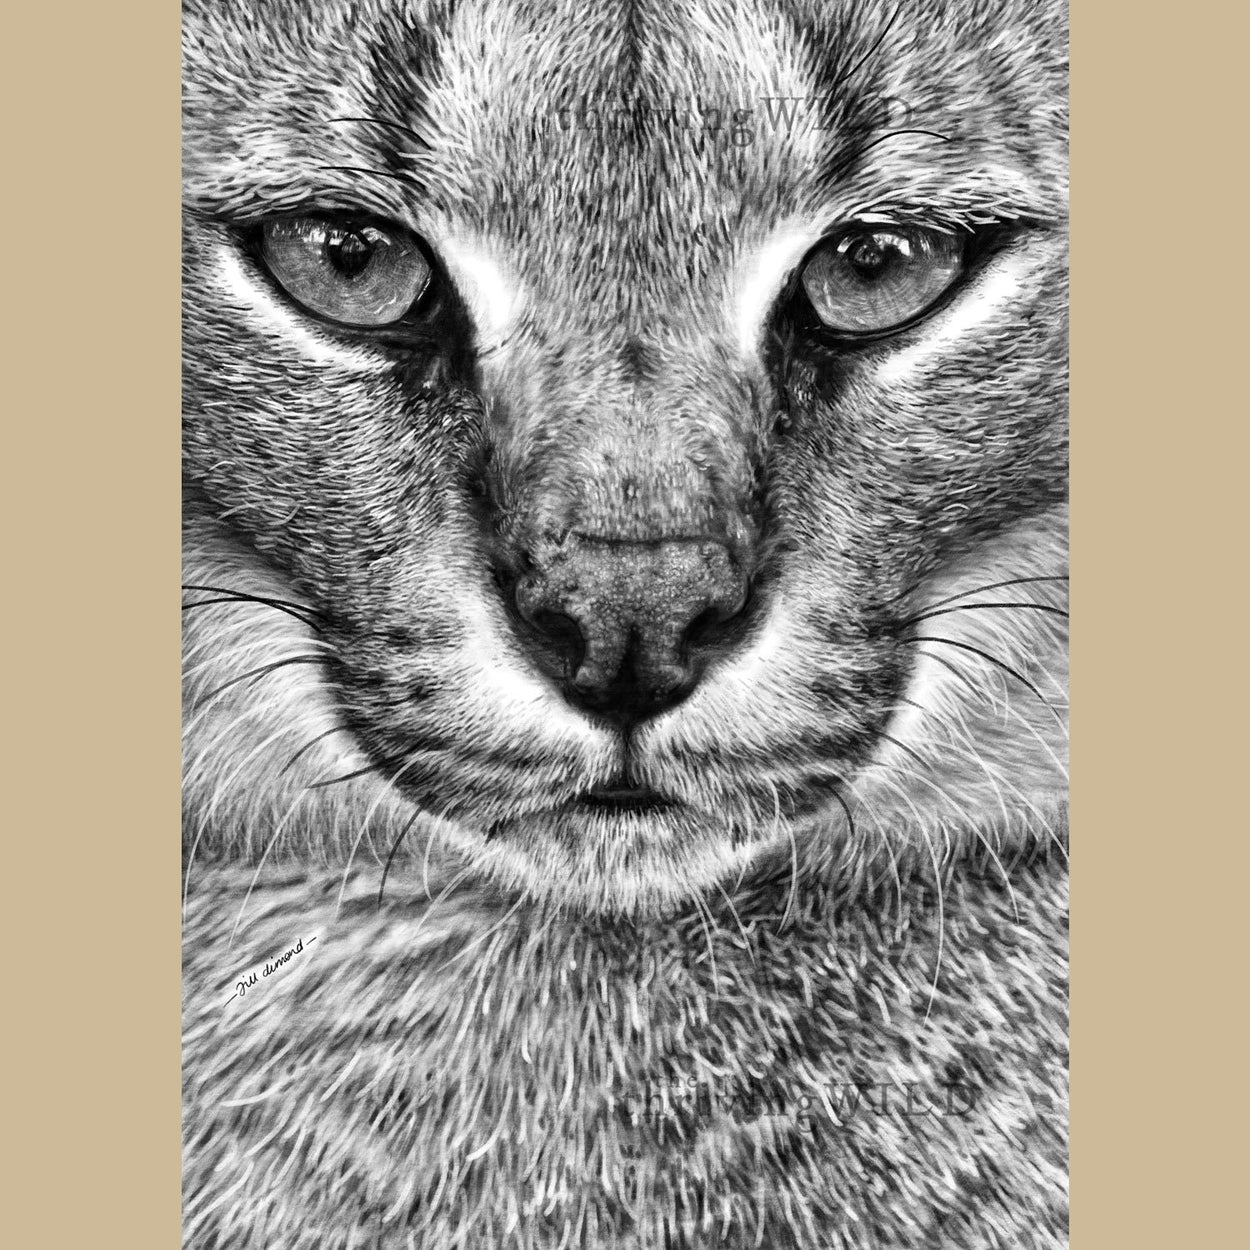 Caracal Lynx Procreate Digital Drawing - The Thriving Wild